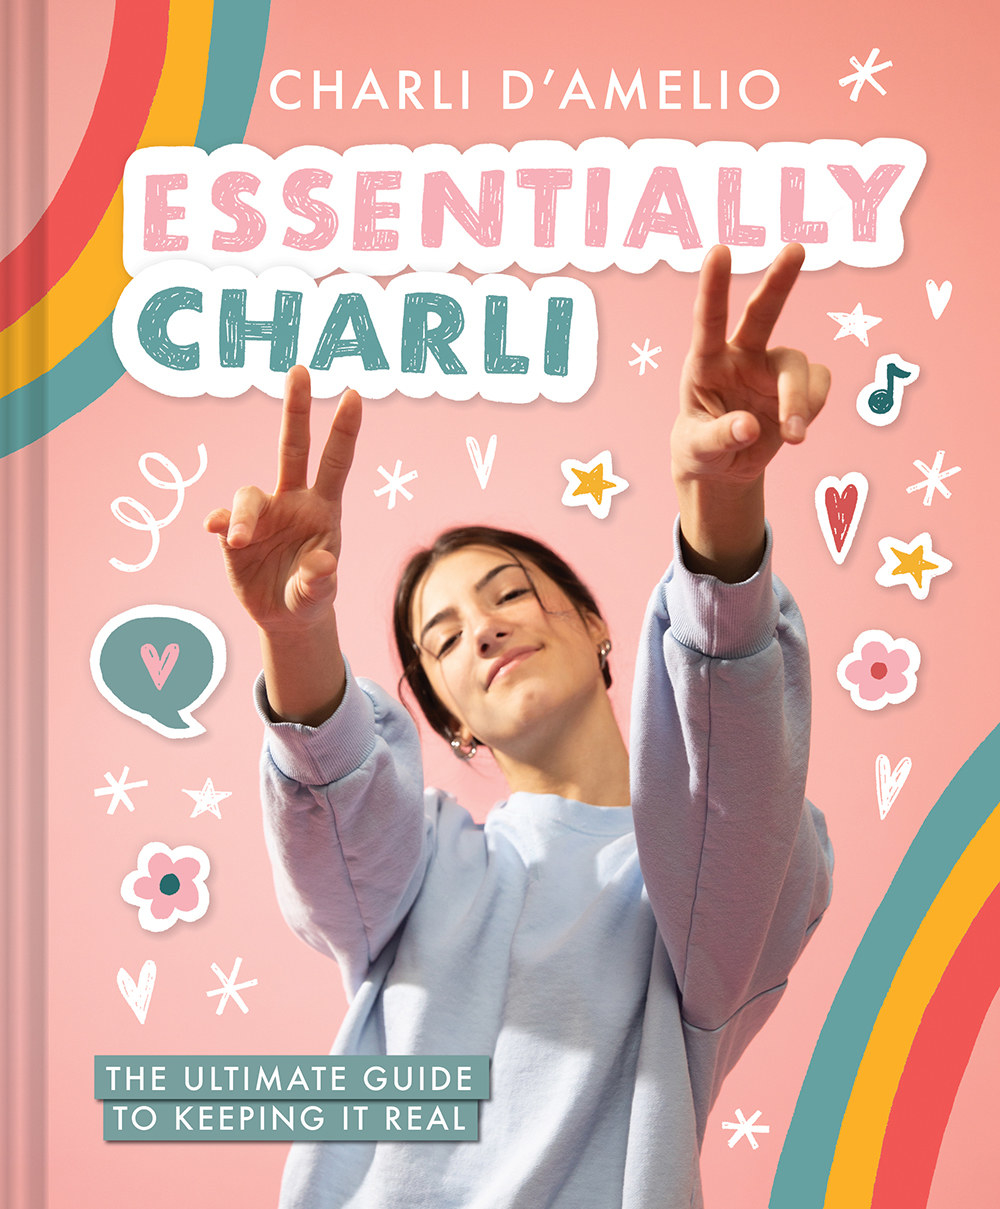 Charli holding peace signs up on her book cover with stars and rainbows